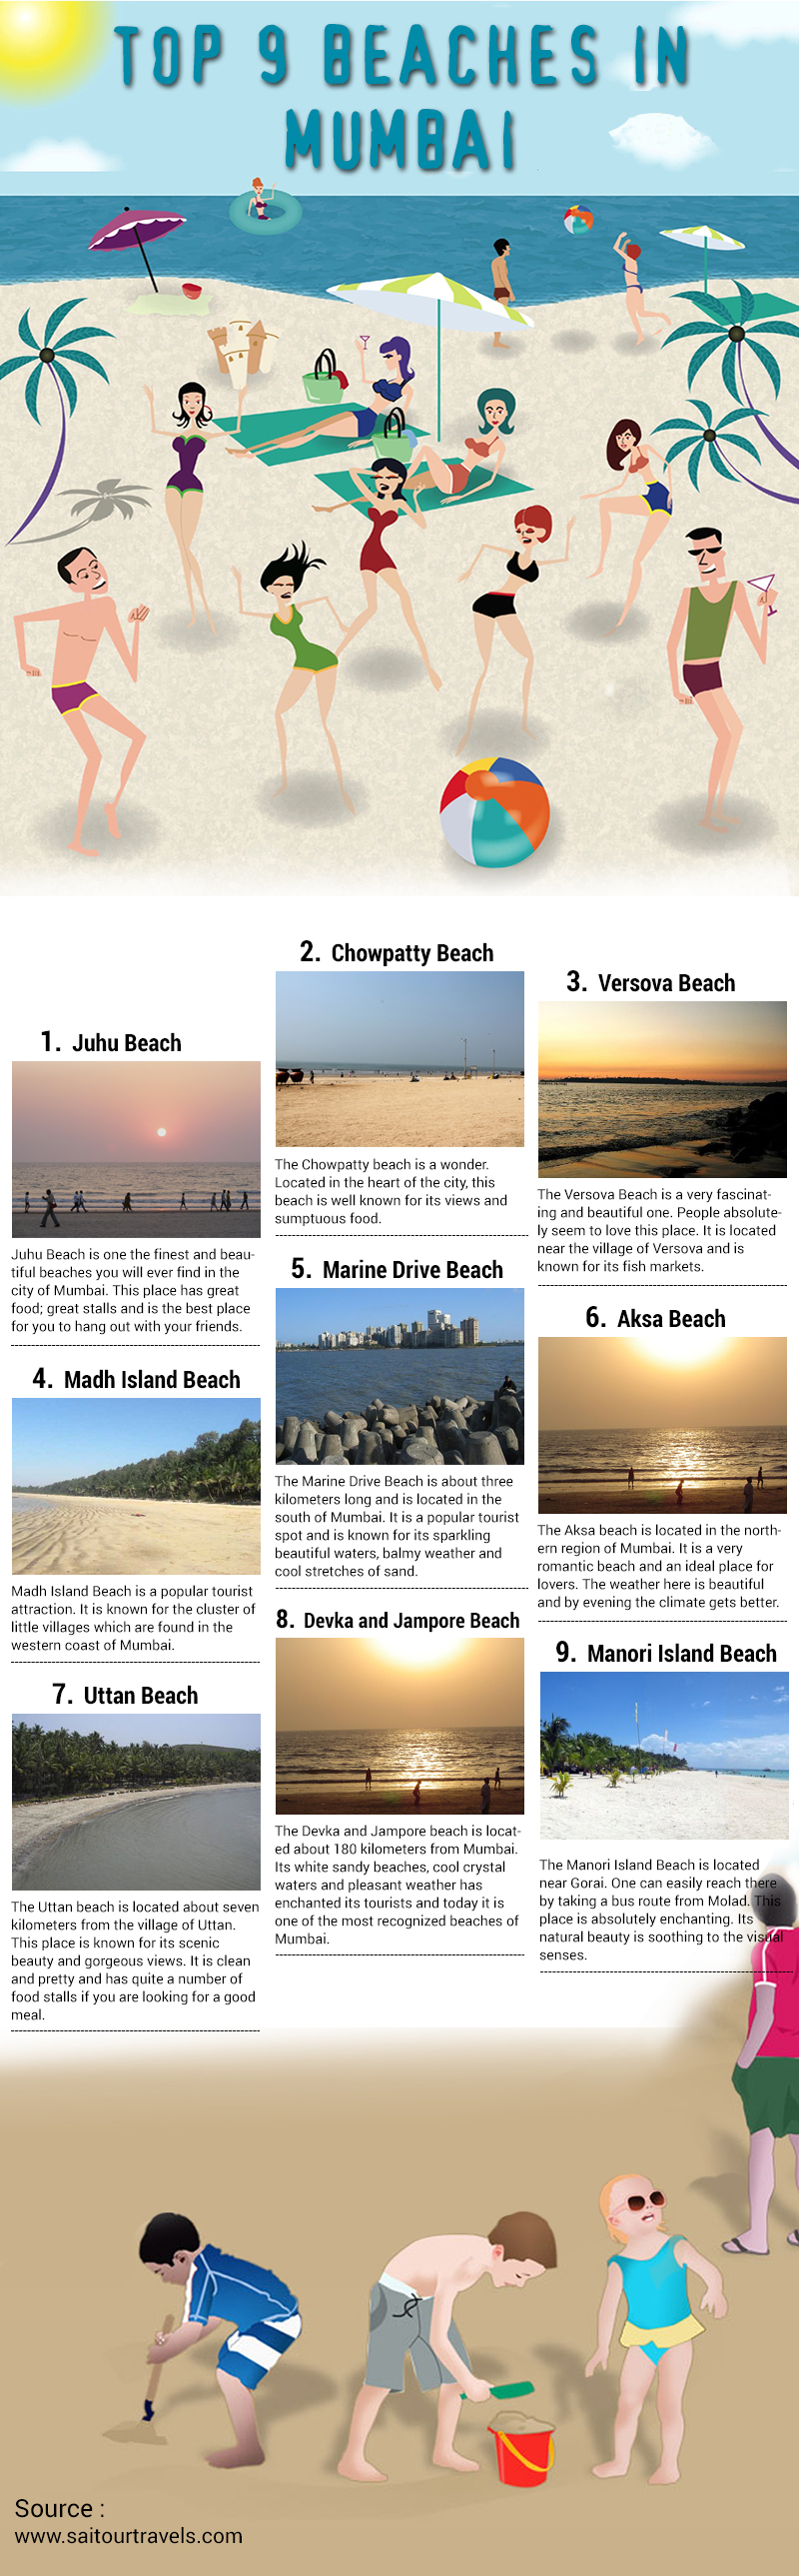 Top 9 Beaches in Mumbai